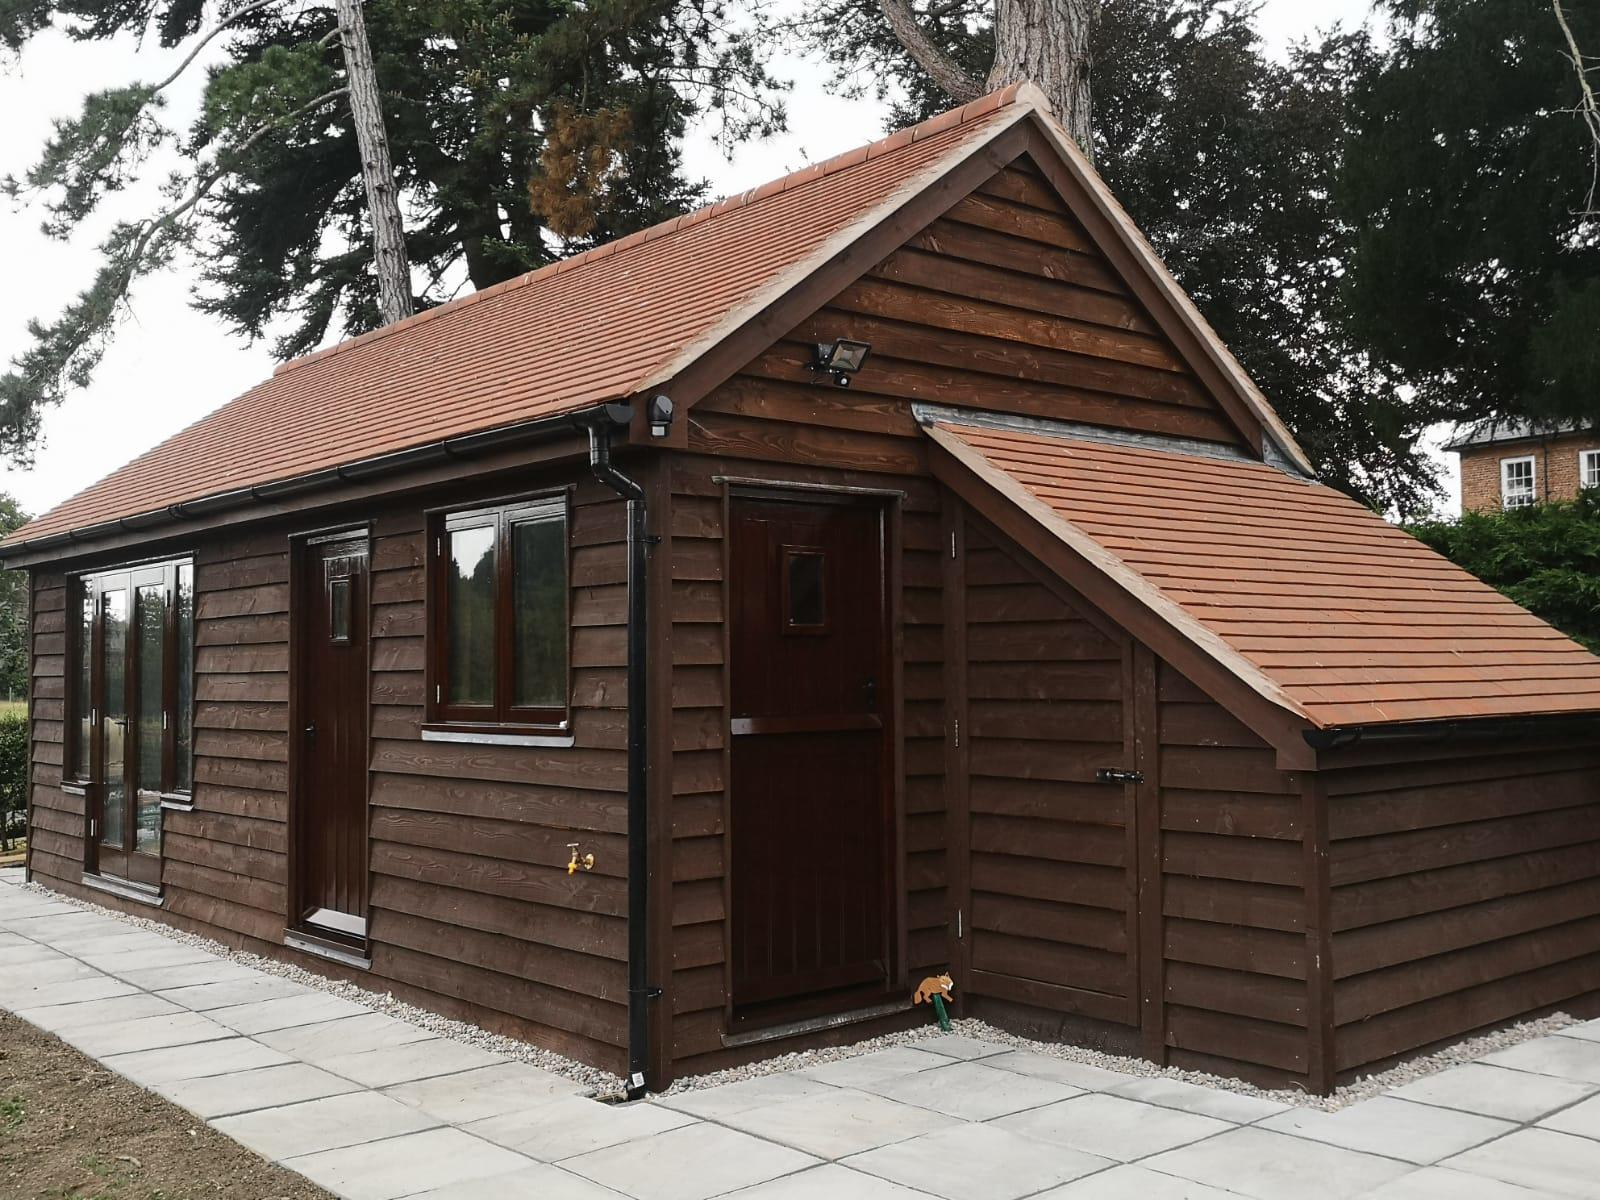 Mr D.Bishop - Herefordshire -- Image 3 -- The final result. One garden lodge with wood store complete. all supported with our Ground Screws